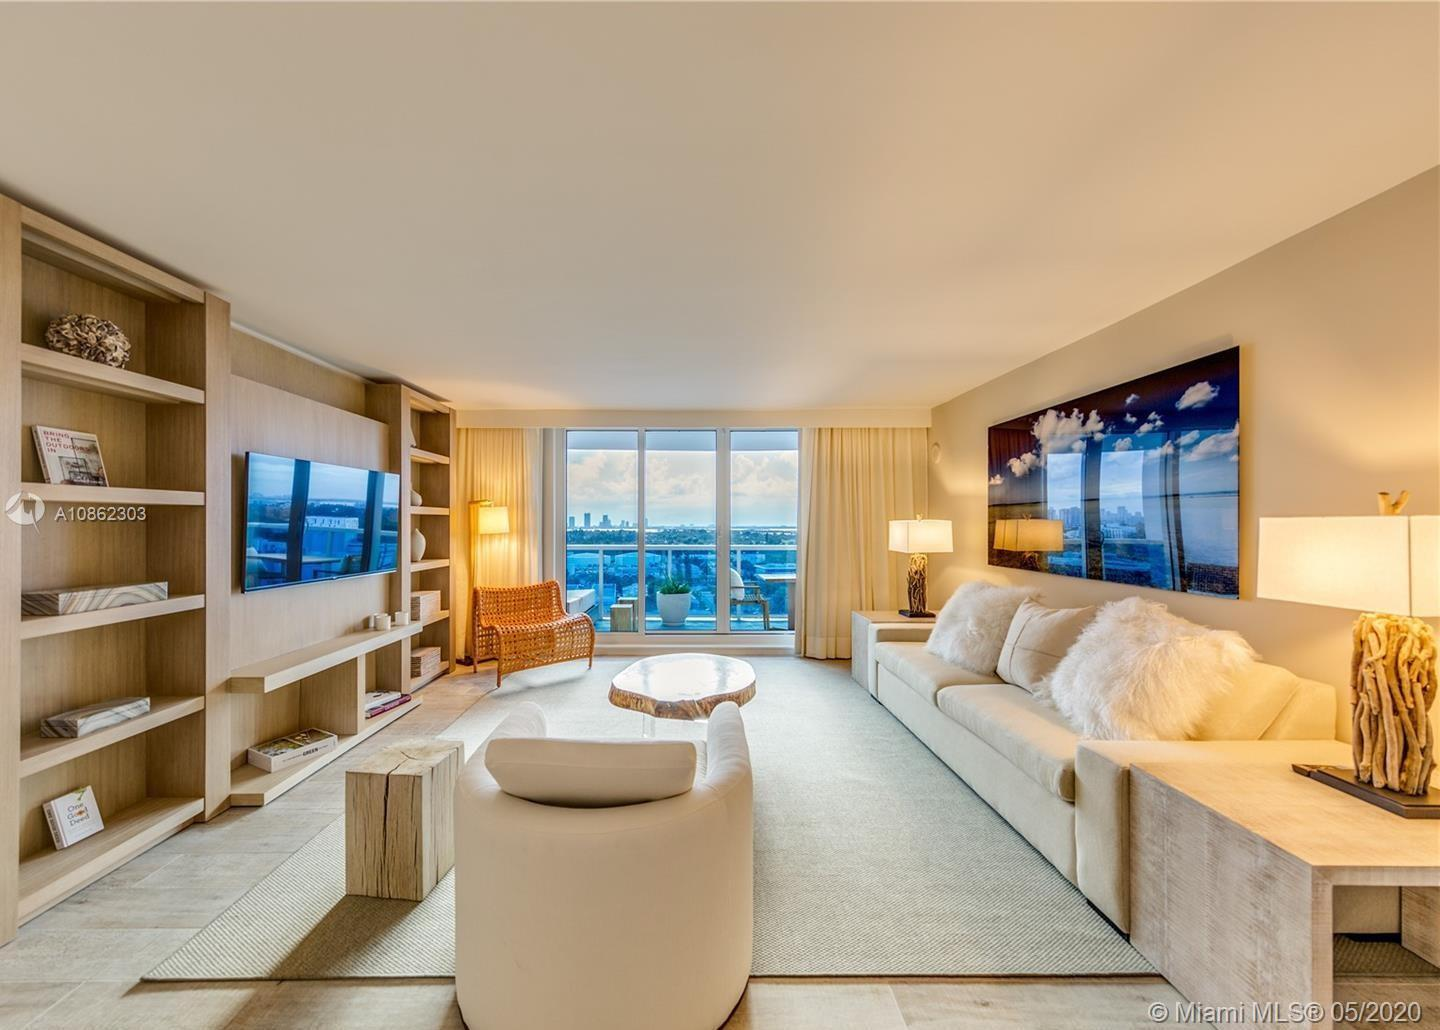 This gorgeous 1,000 Sq. Ft. 1/1 is the perfect combination of all things natural and organic in a luxurious setting. From a furnished private balcony with a double chaise lounge and a table set for two with breathtaking views of the Intracoastal. Enjoy your relaxing living room with a plush white organic sofa that converts into a bed, and a 4 seater dining table that leads to a private master bedroom with a king-sized Keetsa mattress. When booking this condo, you receive hotel privileges. Hotel amenities include 4 pools, gym, spa and 4 onsite restaurants. Reservations under 30 nights do not receive in suite dining.This condo comes fully equipped with a dishwasher, refrigerator, microwave, oven, stove, blender, coffee machine, Nespresso machine, disposal, washer/dryer and more.